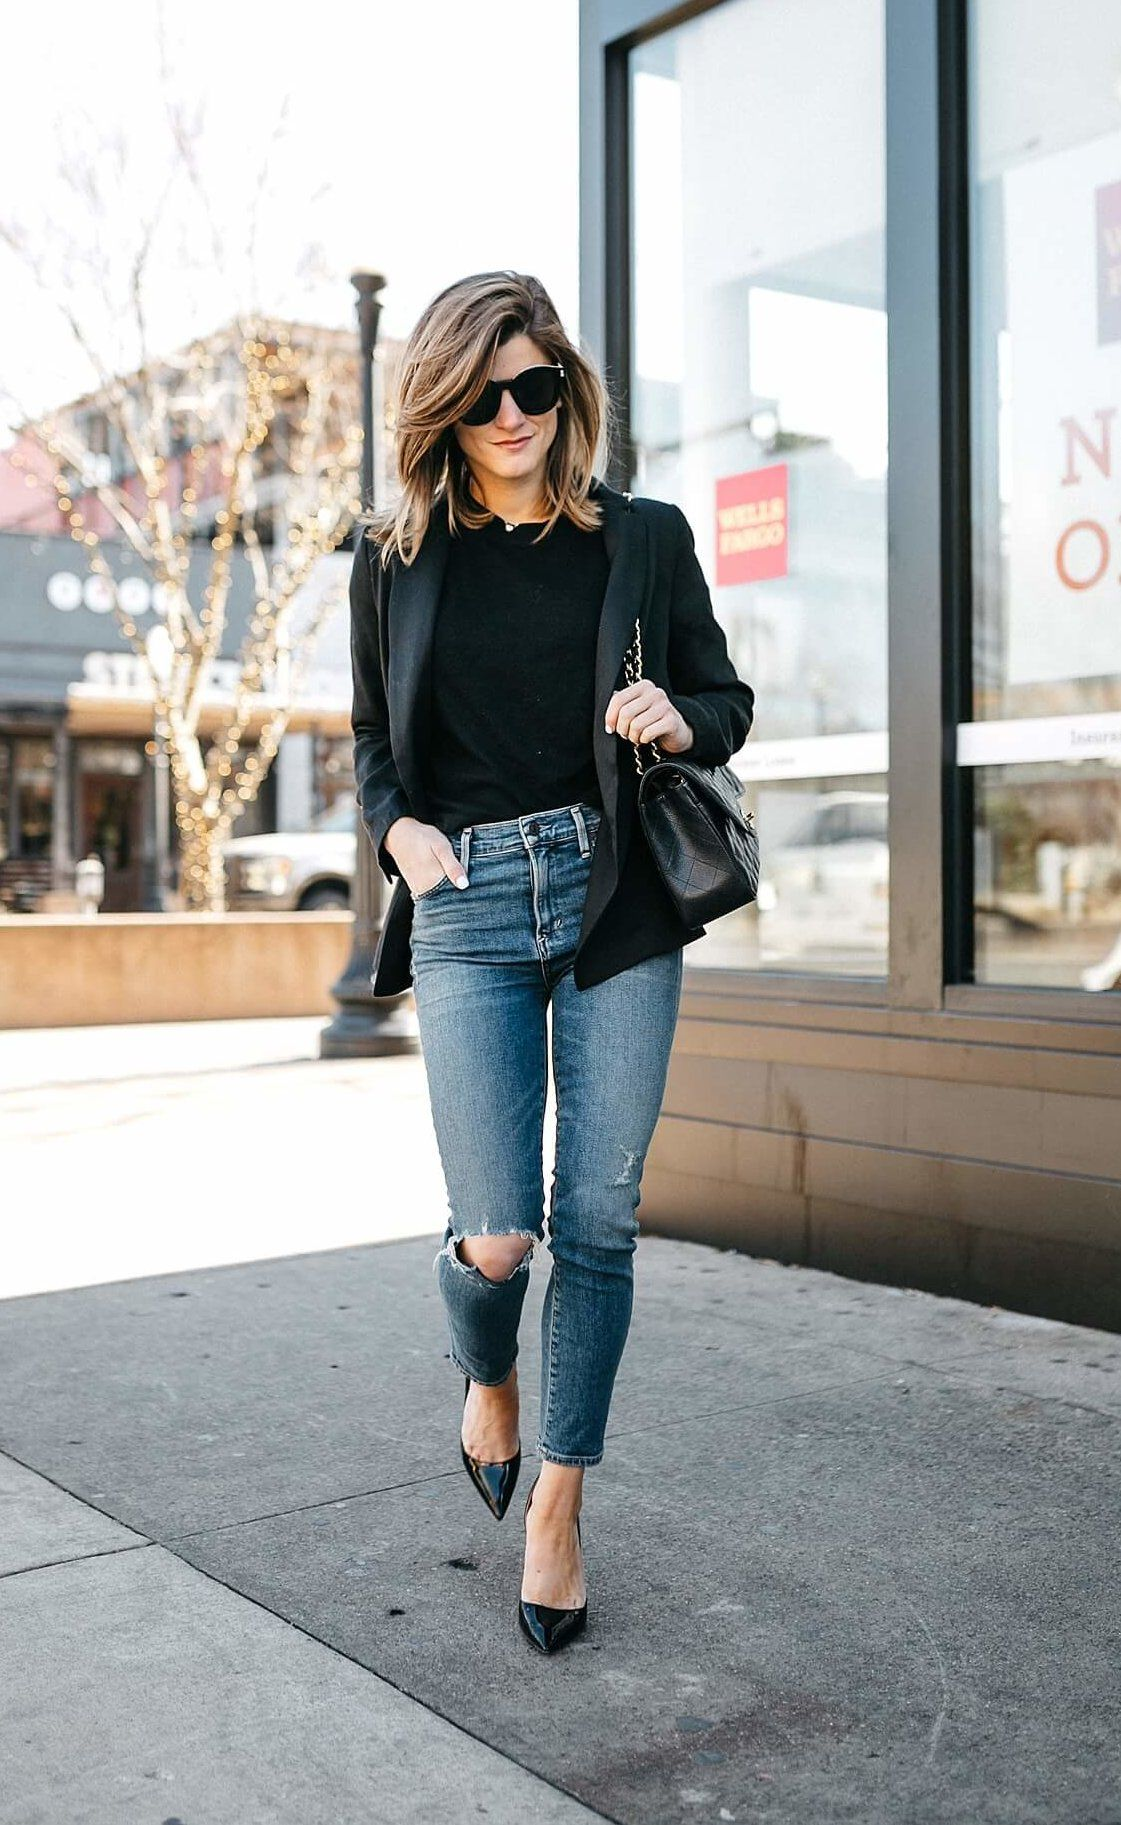 Blazer With Jeans Outfit - Sophisticated Chic Style ...